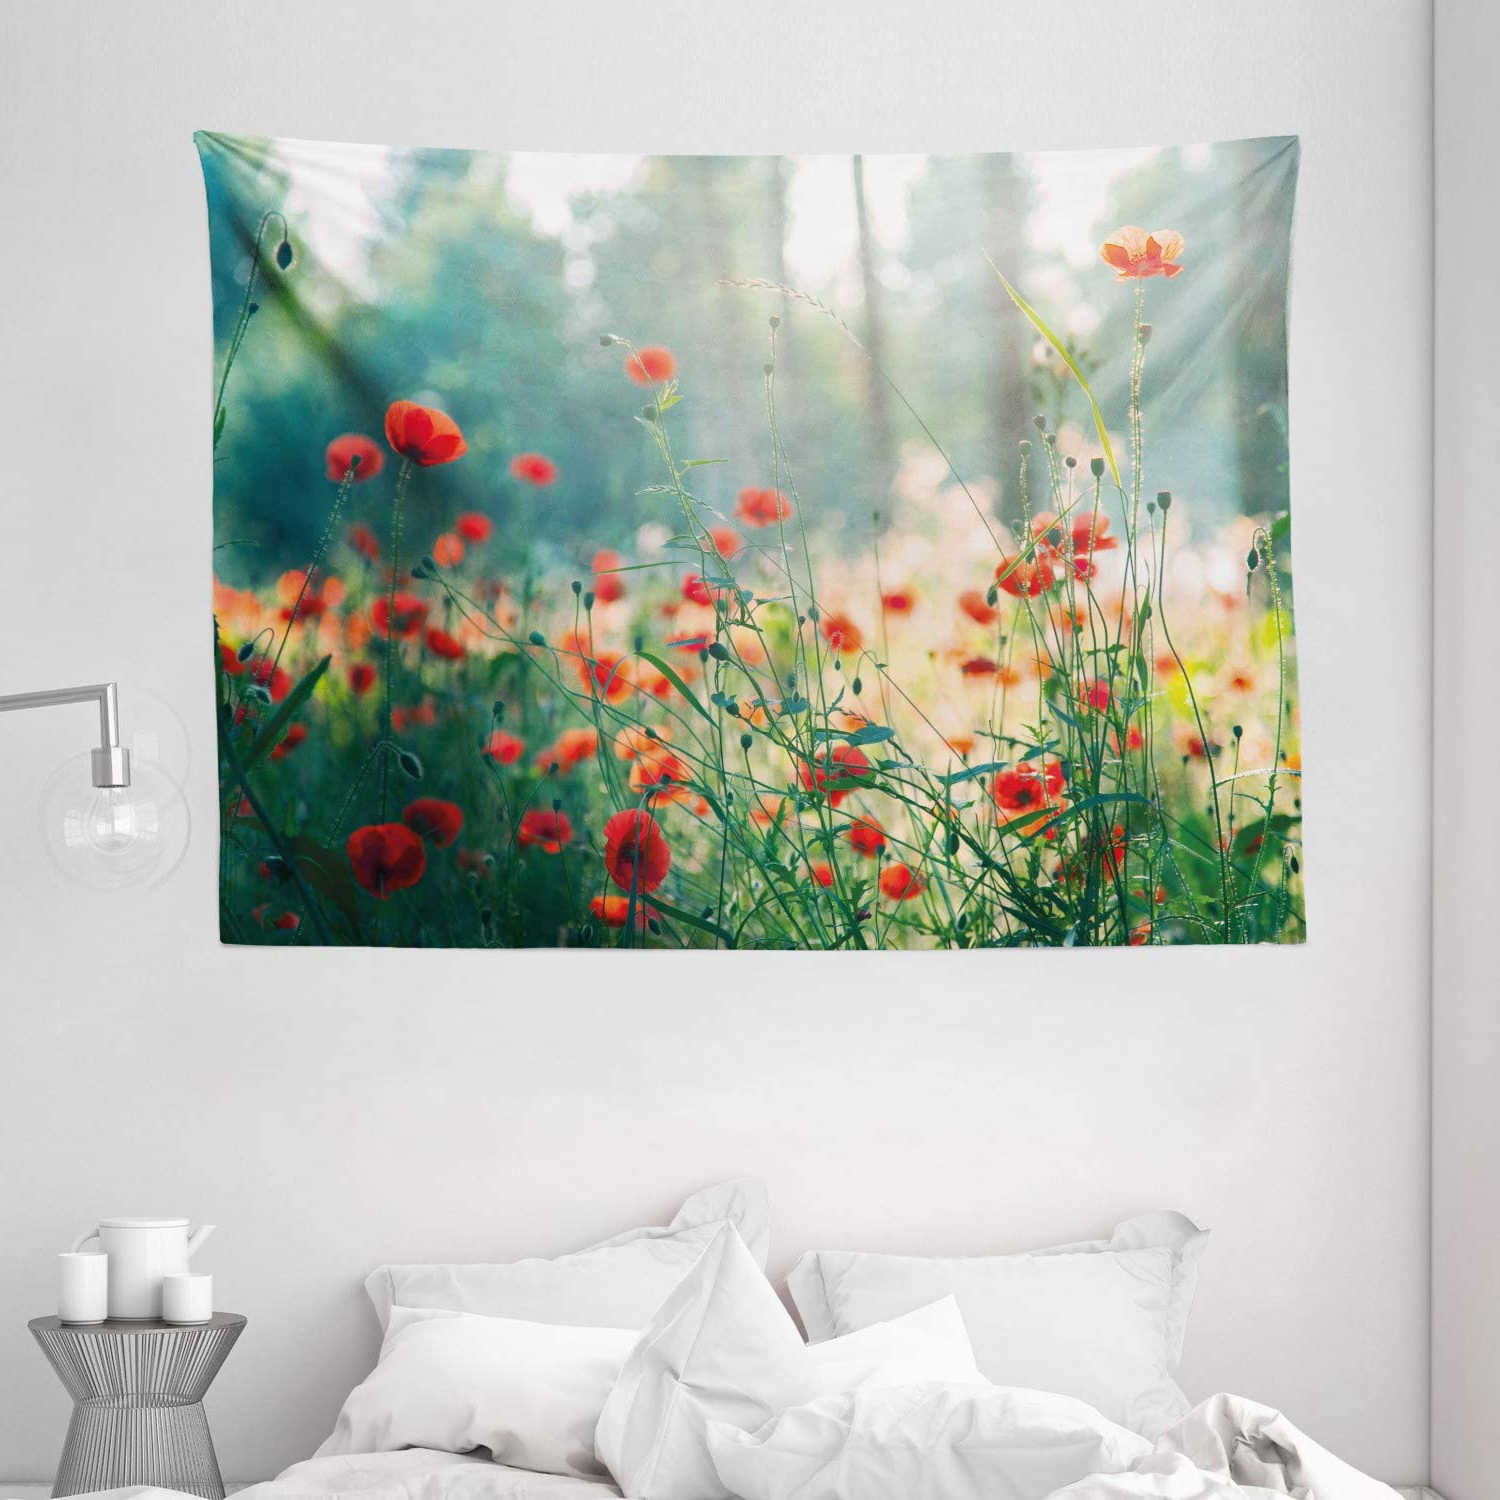 Widely Used Blended Fabric Poppy Red Wall Hangings Regarding Ambesonne Nature Tapestry, Wild Red Poppy Flowers Field Summertime Sunbeams Gardening Bedding Plants, Wide Wall Hanging For Bedroom Living Room Dorm, (View 17 of 20)